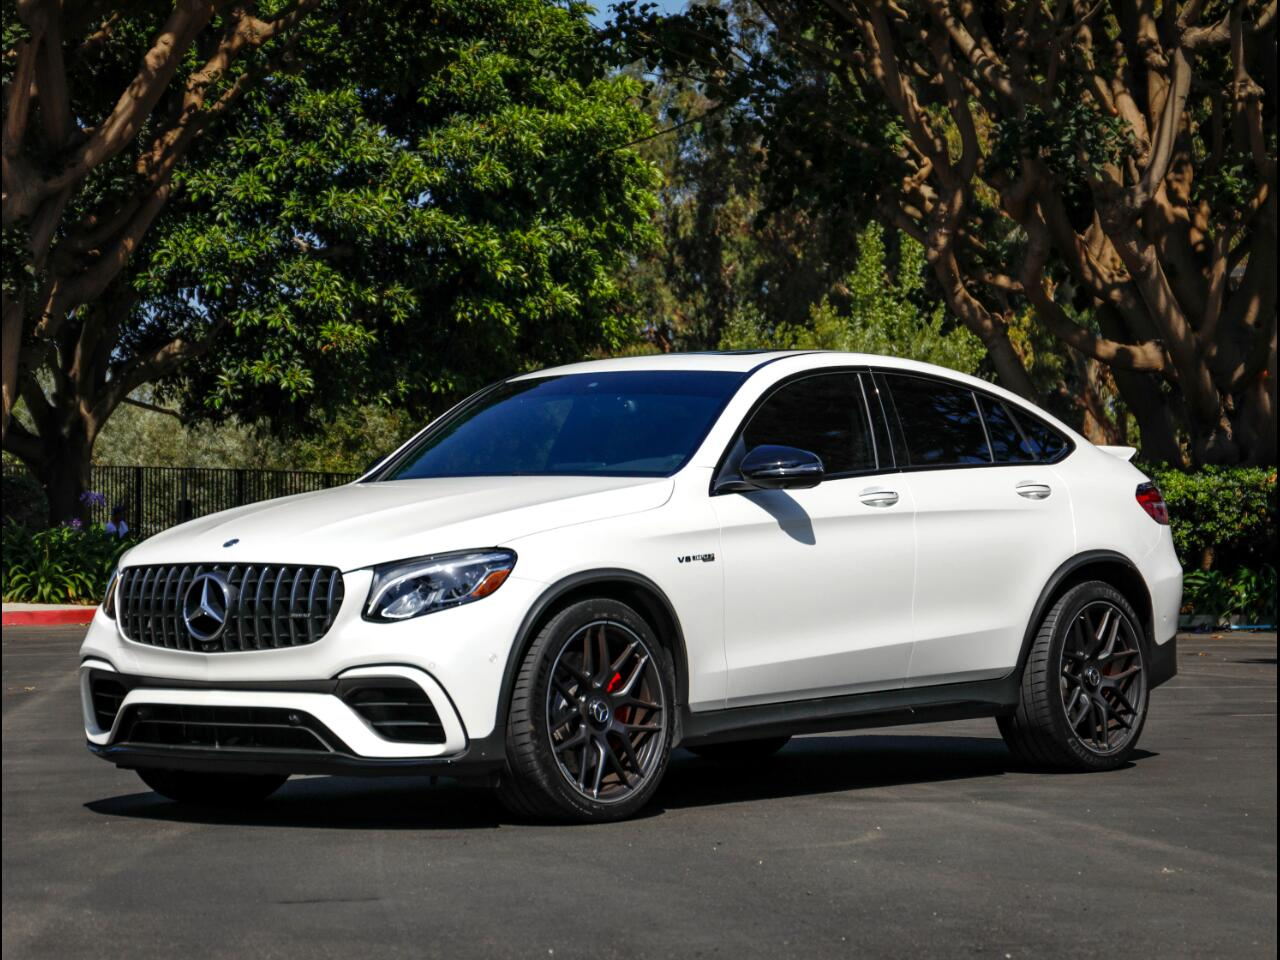 2019 Mercedes-Benz GLC AMG GLC 63 S 4MATIC Coupe